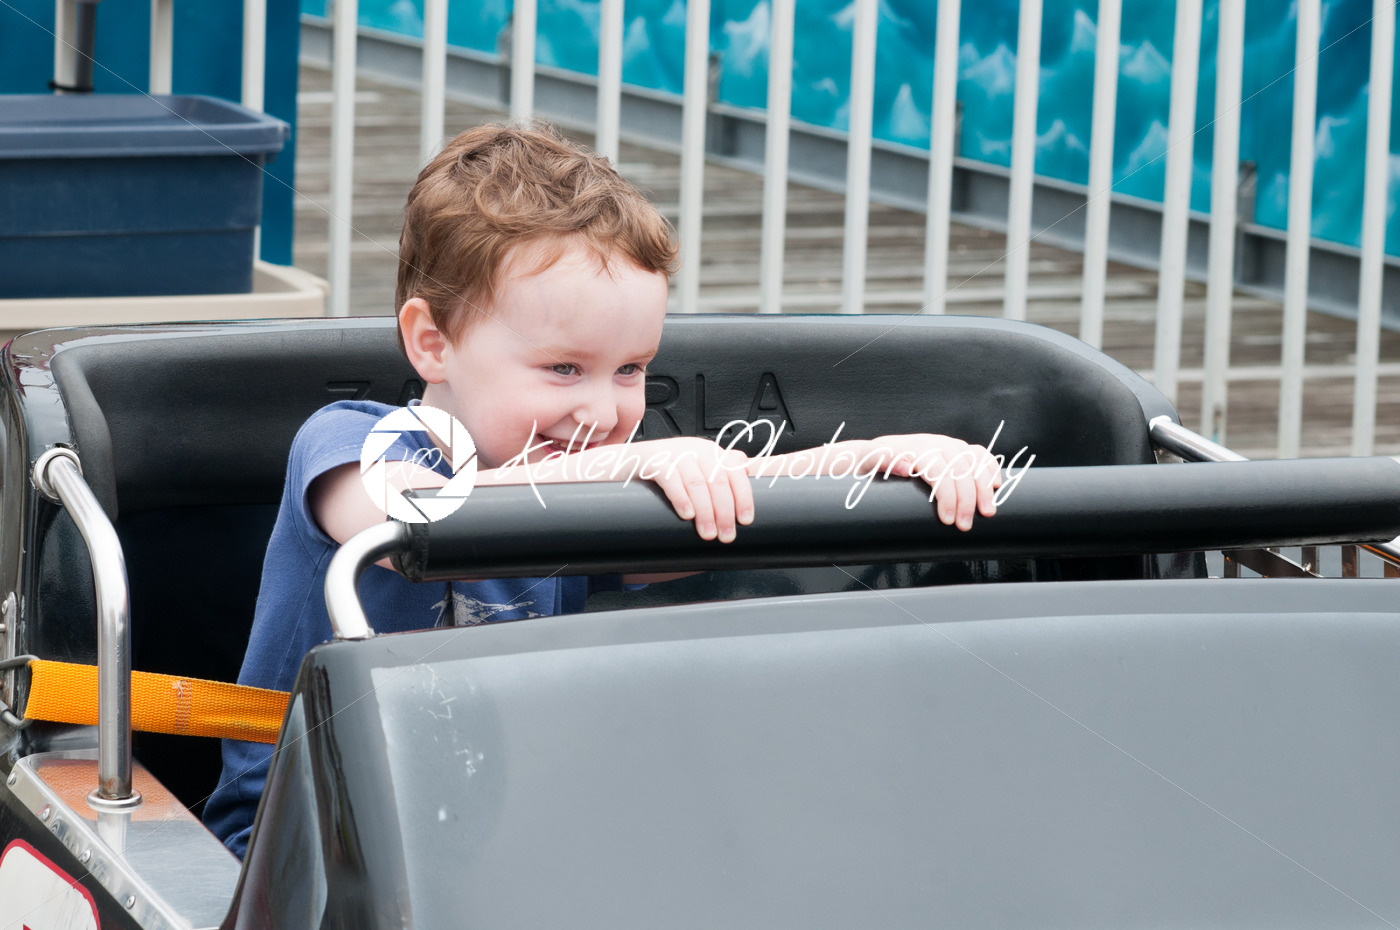 Young toddler boy having fun on boardwalk amusement ride - Kelleher Photography Store